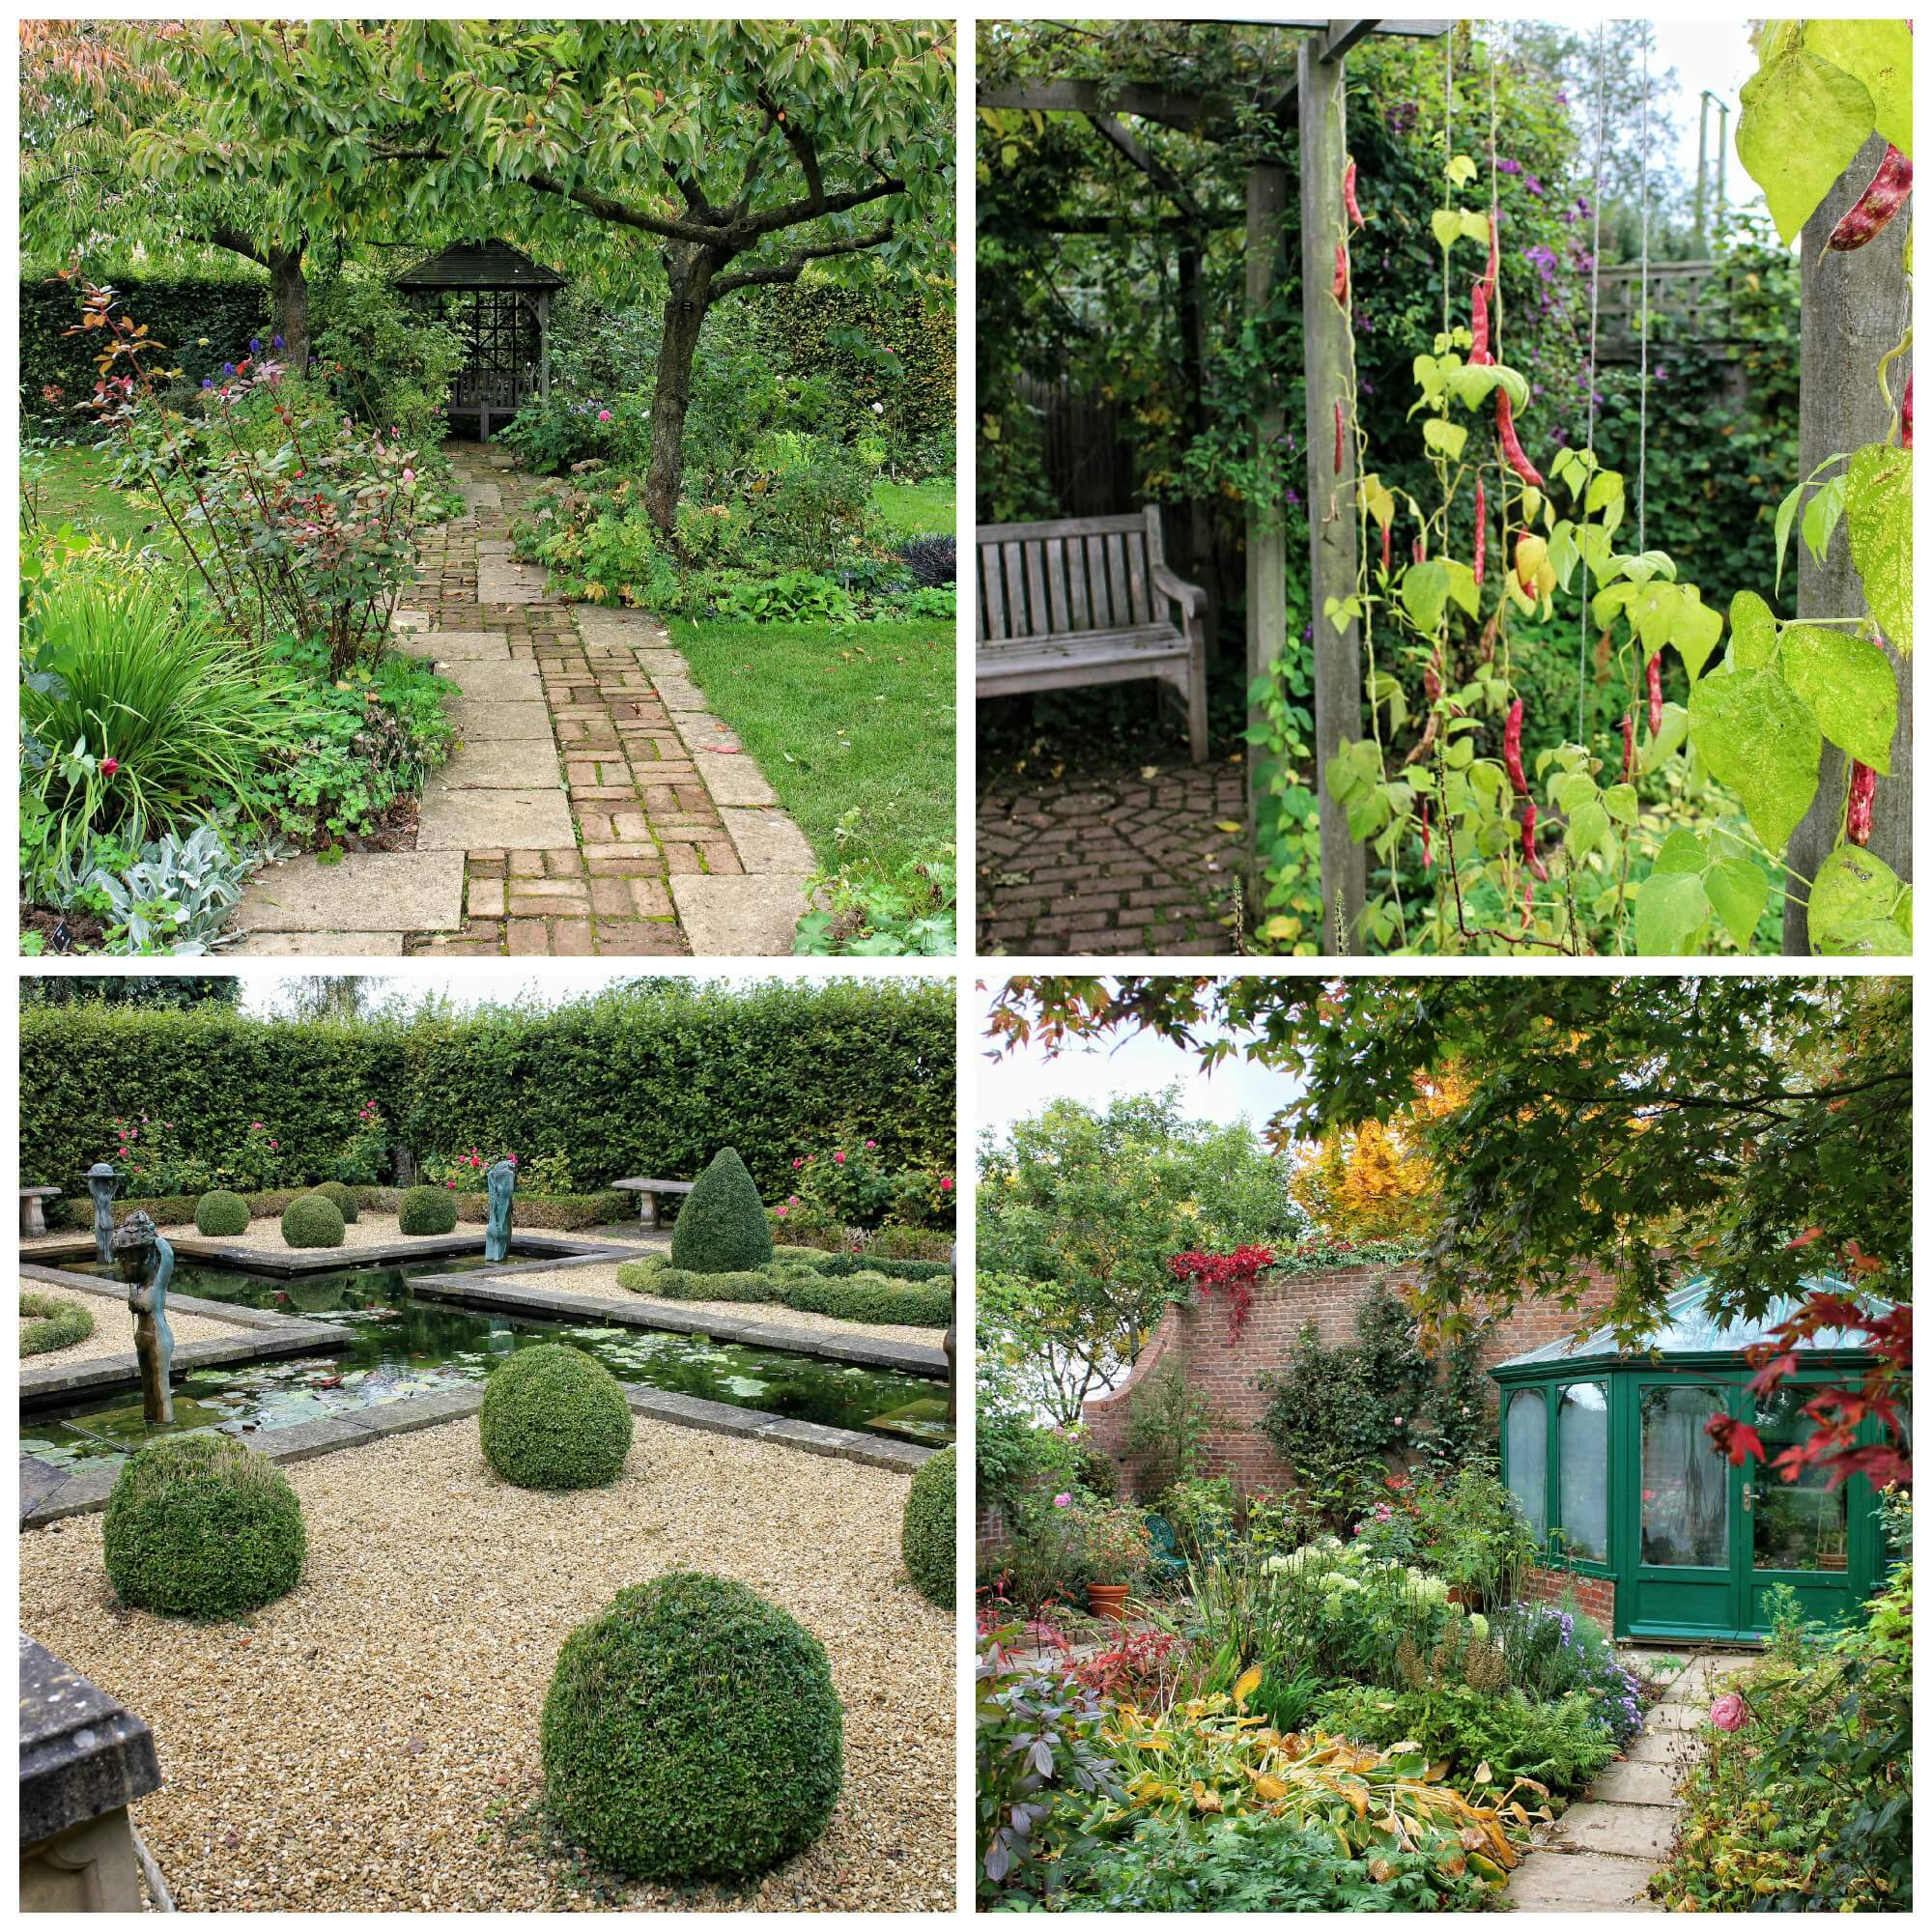 (Clockwise from top left) the Rose Garden, my personal favourite the Ornamental Kitchen Garden, the Formal Pool & Knot Garden and Town Paradise Garden